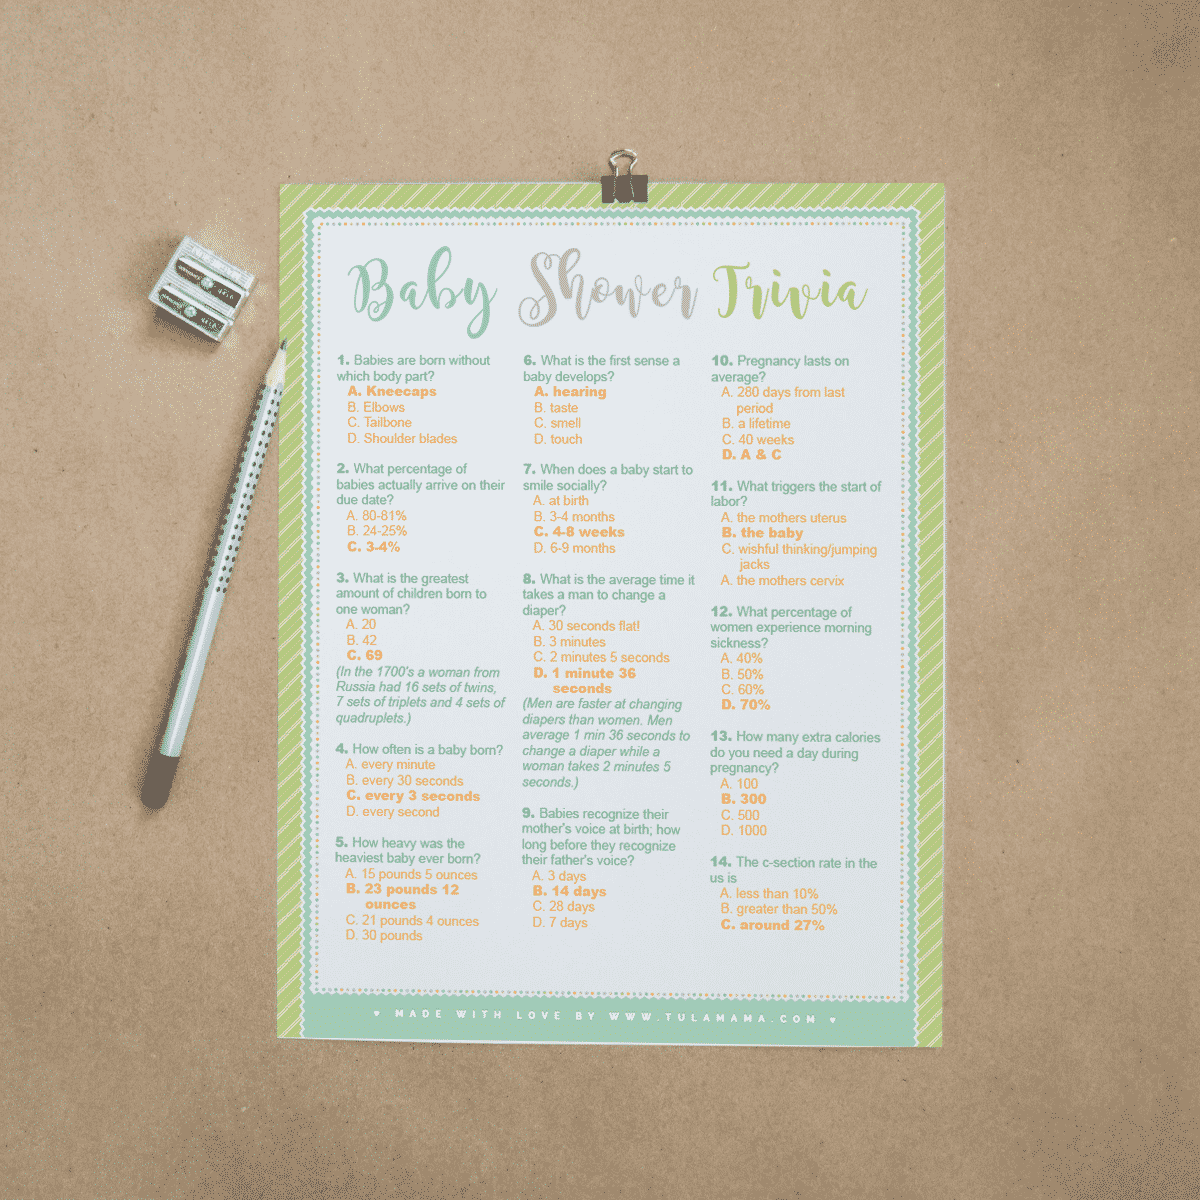 Baby Shower Trivia Free Printable